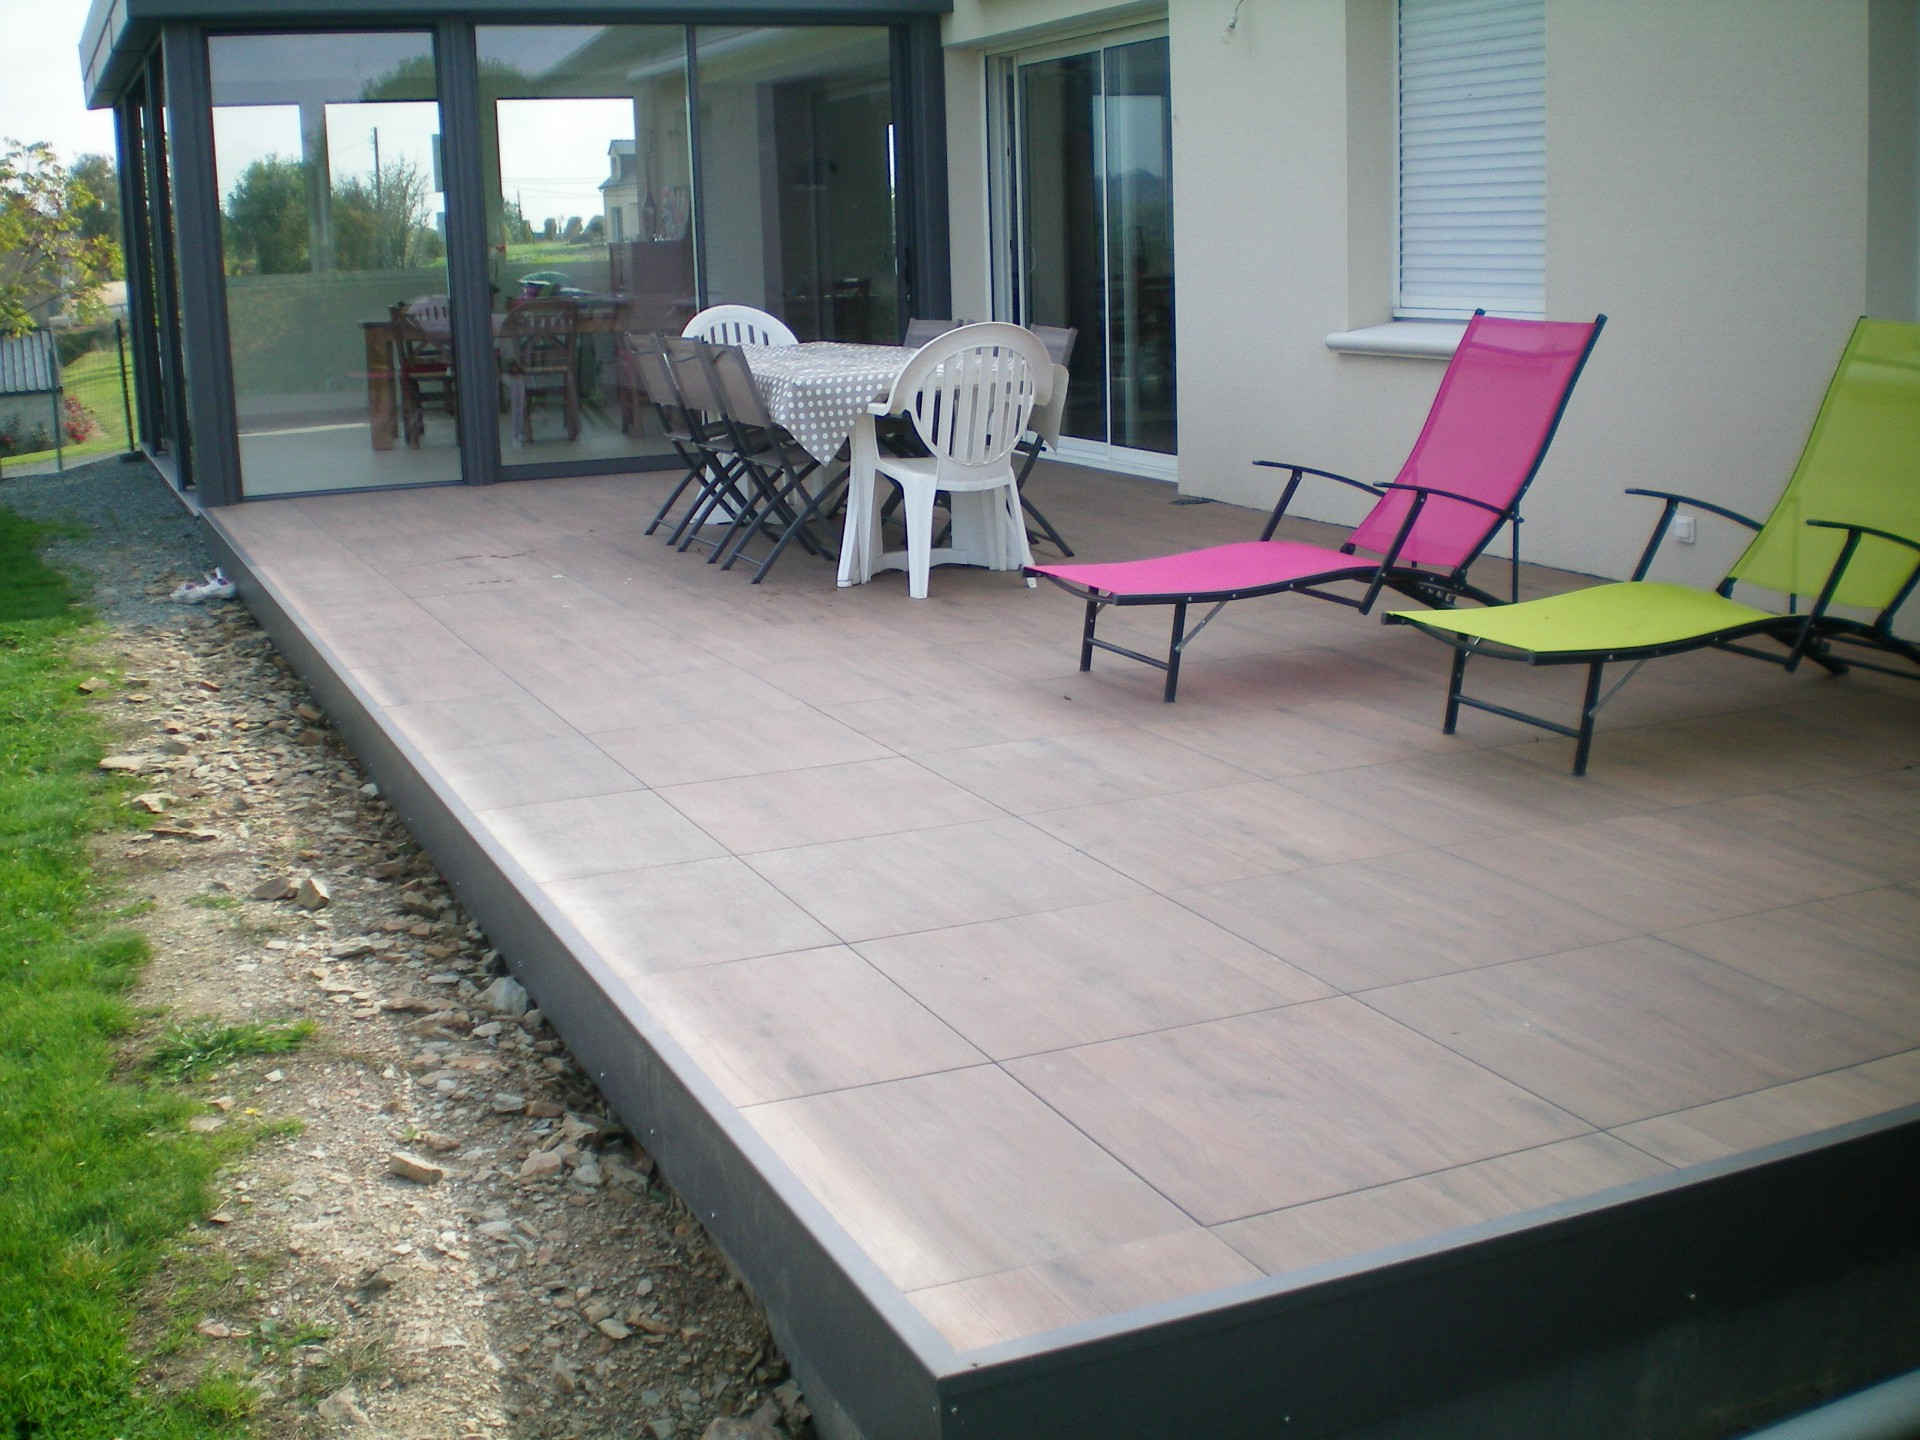 Carrelage design carrelage sur plot moderne design for Carrelage exterieur pose sur plot